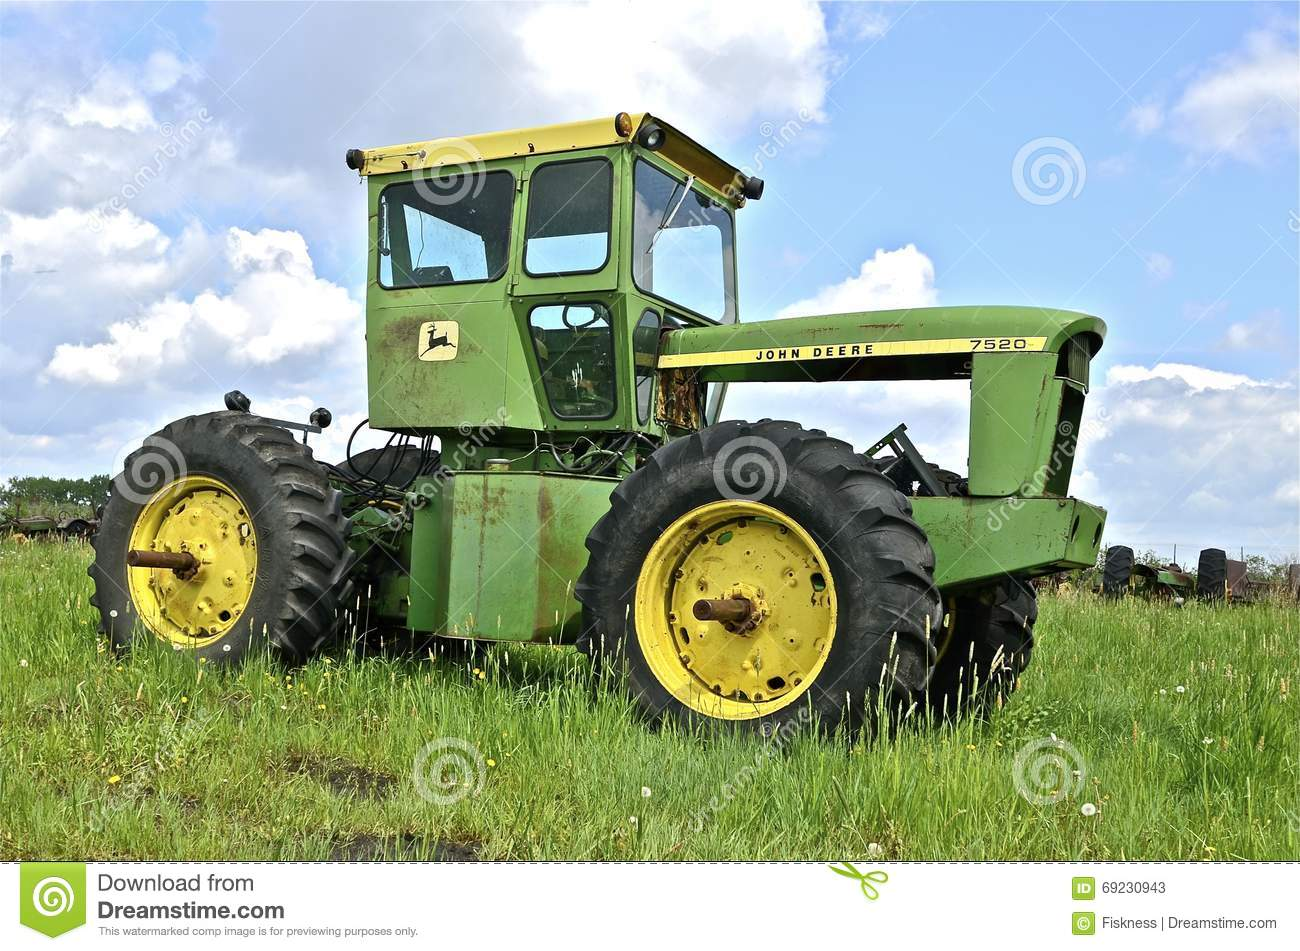 Four Engine Tractor : Four wheel drive john deere tractor missing an engine